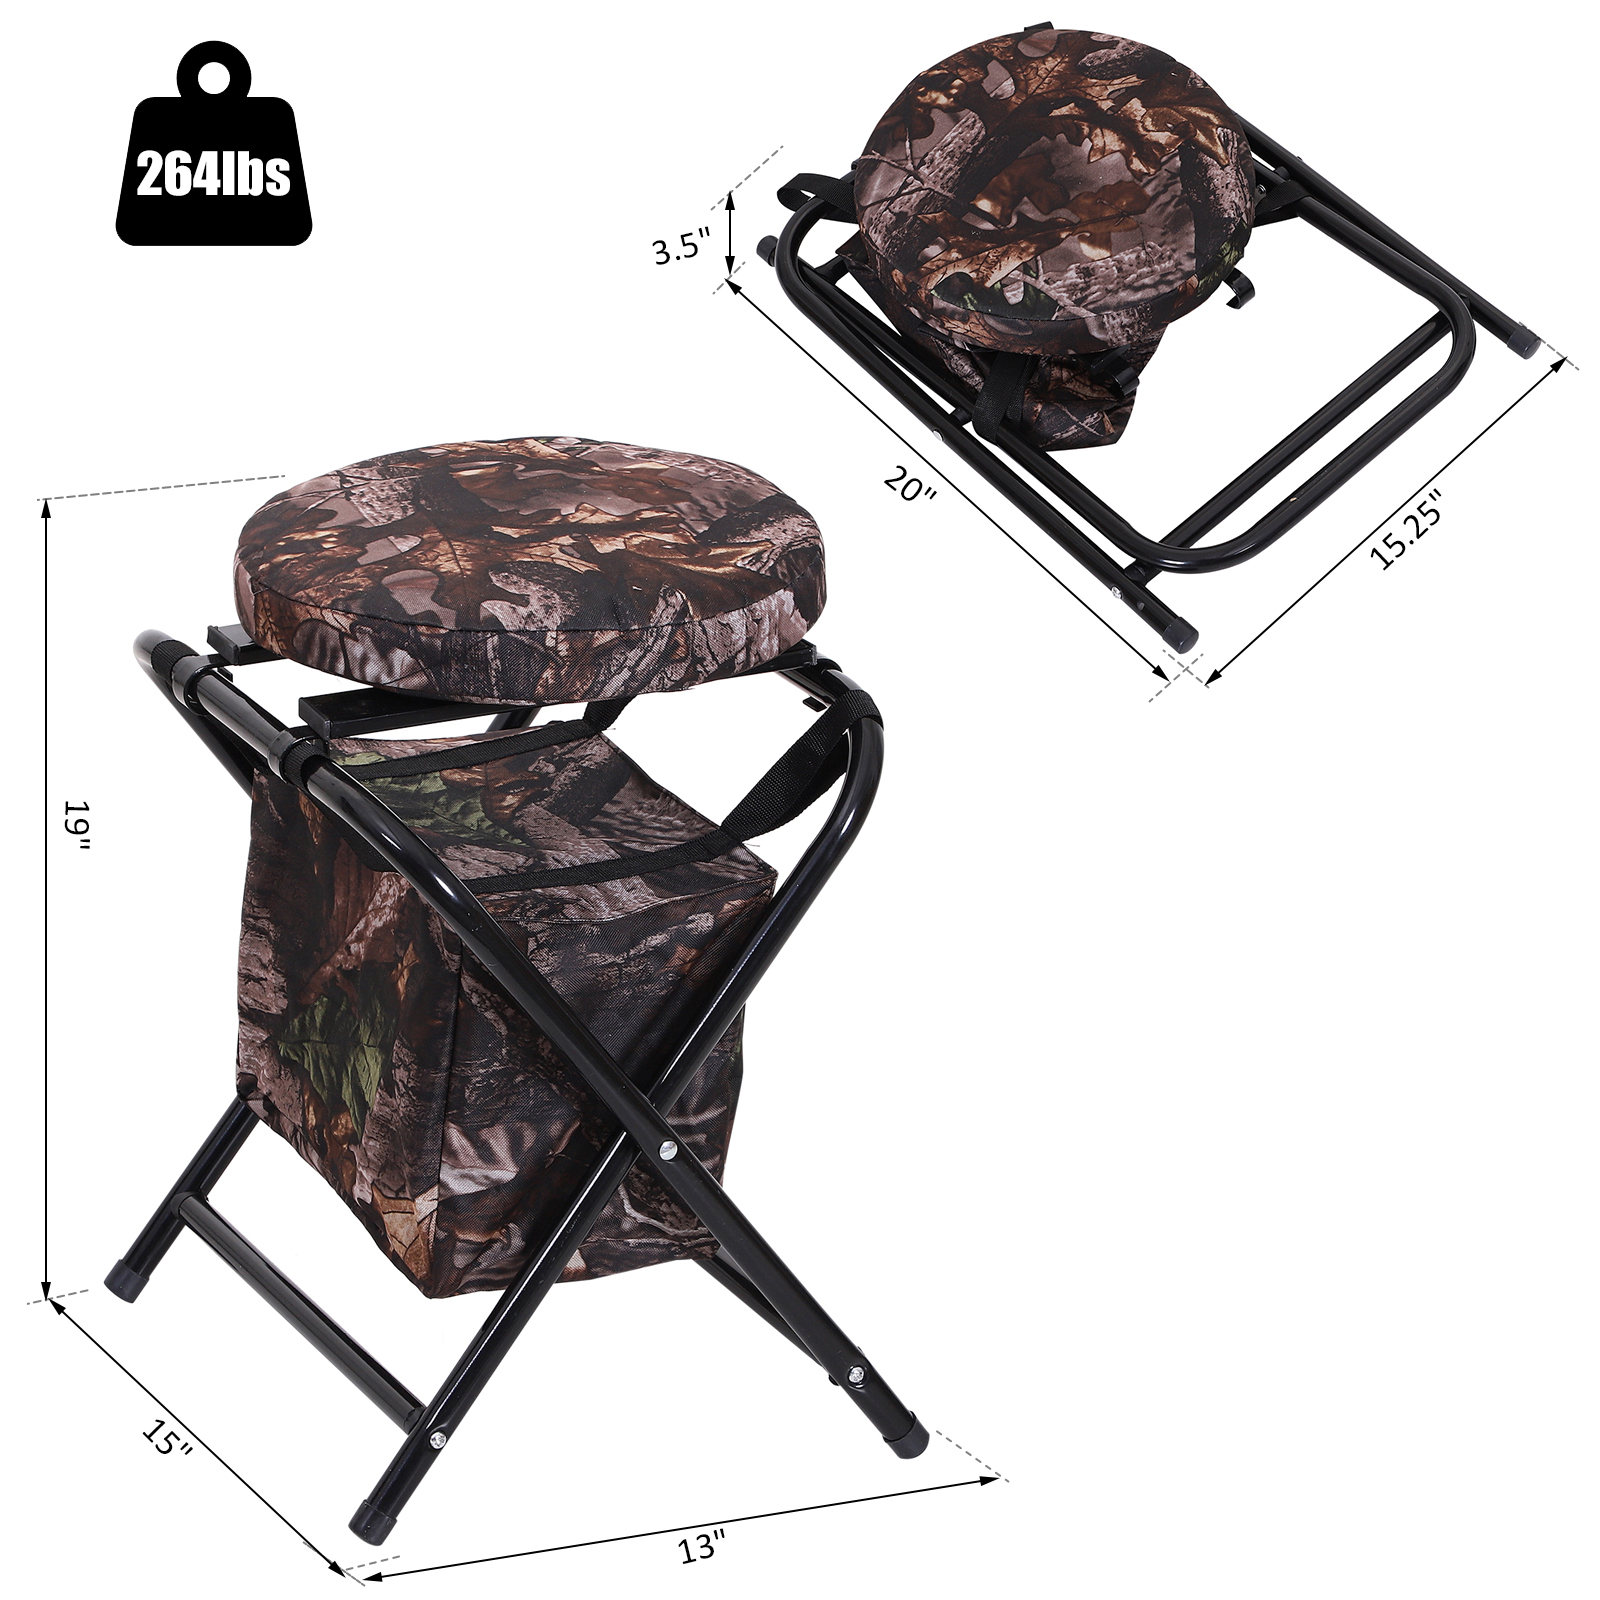 Outsunny-Folding-Rotating-Travel-Camping-Stool-for-Adults-w-Storage-Bag thumbnail 10